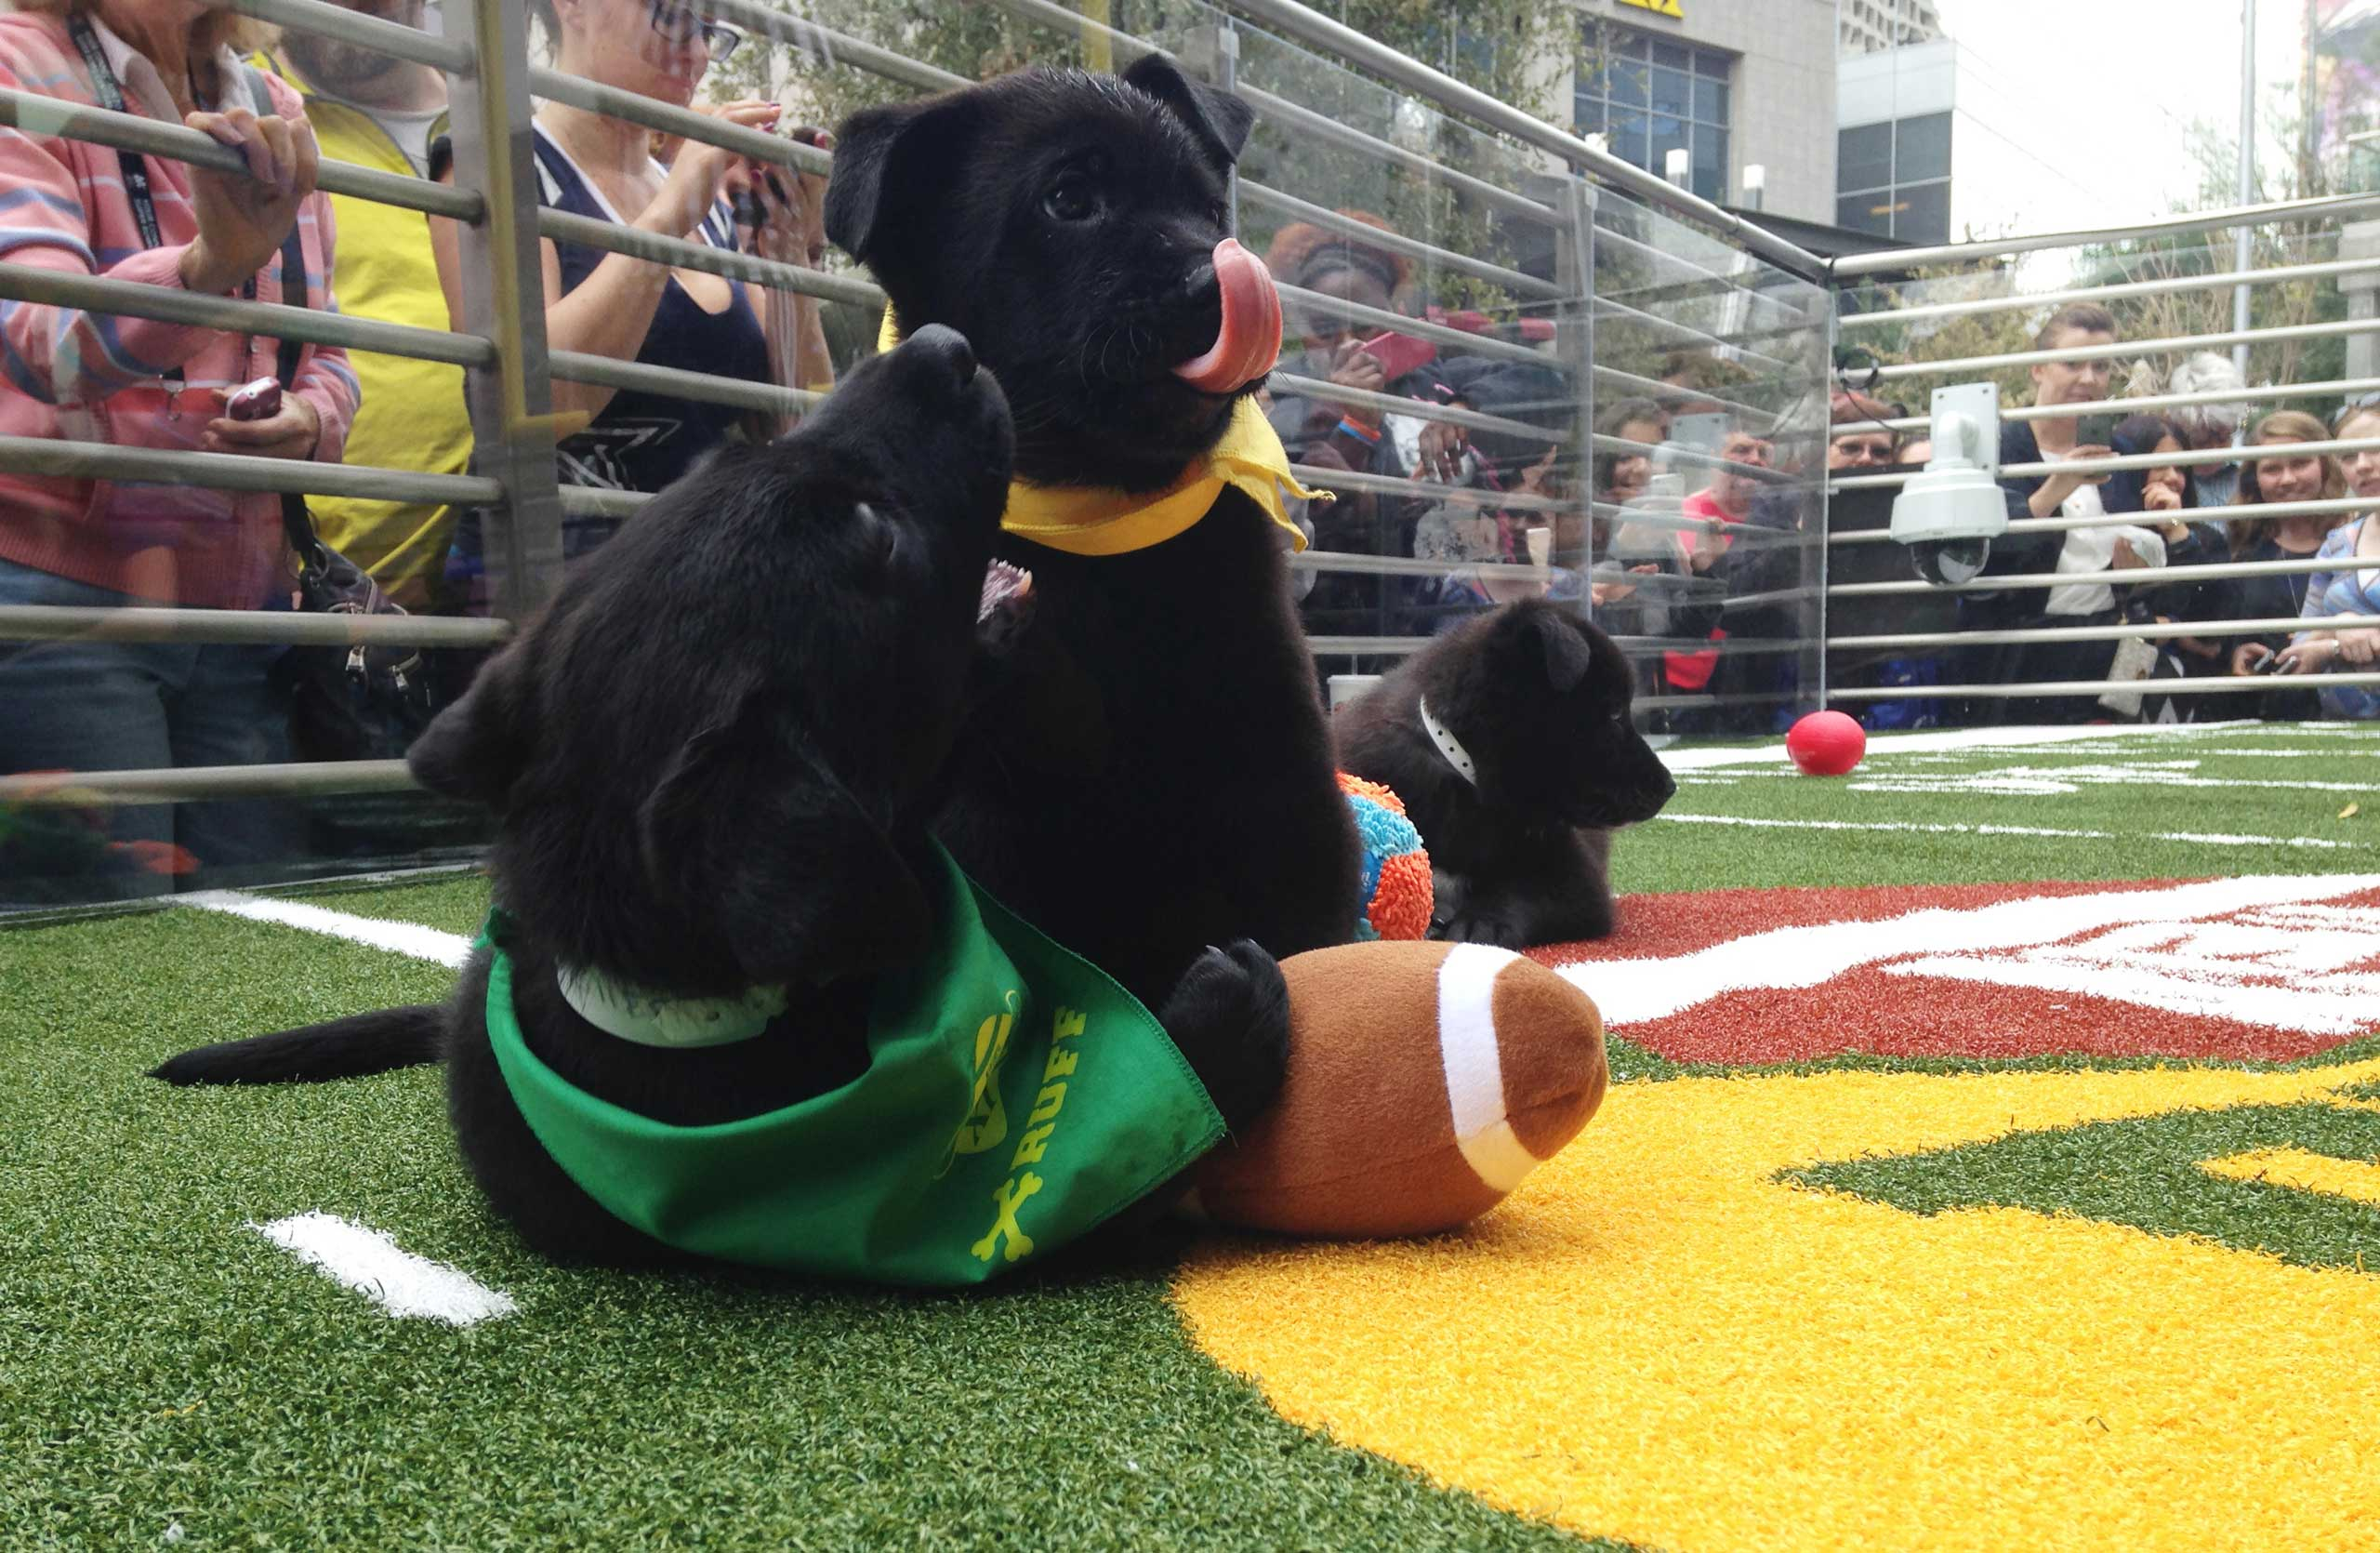 Puppies tussle with a plush football at the  Puppy Bowl  in Phoenix, Jan. 29, 2015.